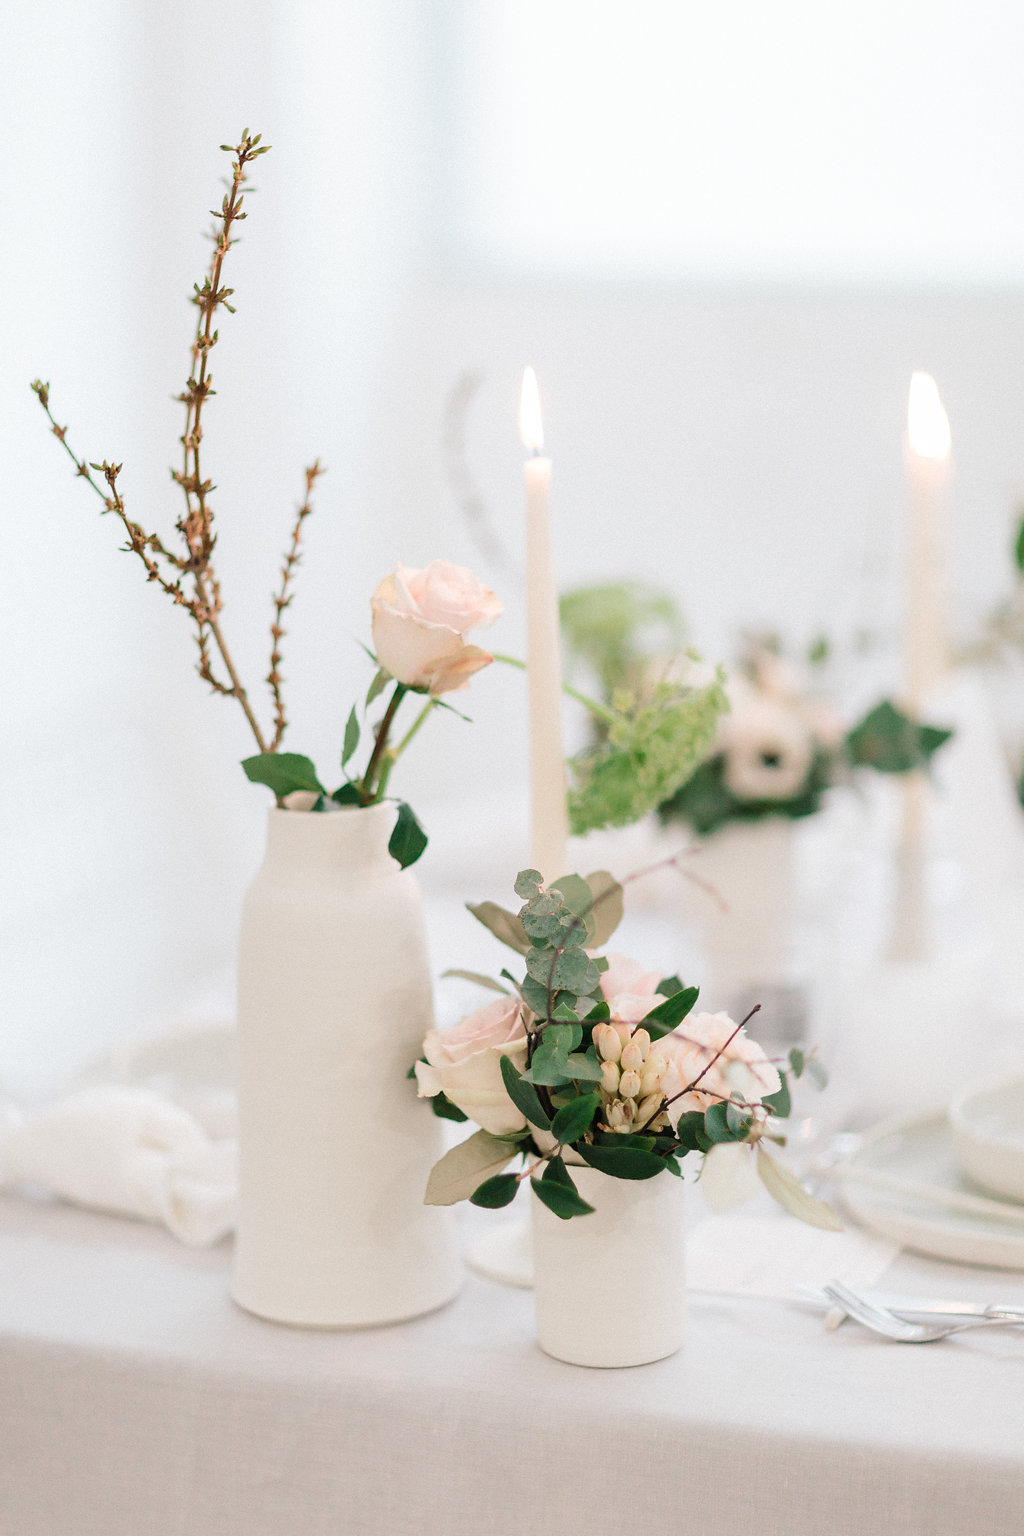 romantic bud vase centerpieces - photo by Julien Bonjour Photographe http://ruffledblog.com/airy-industrial-wedding-inspiration-for-spring